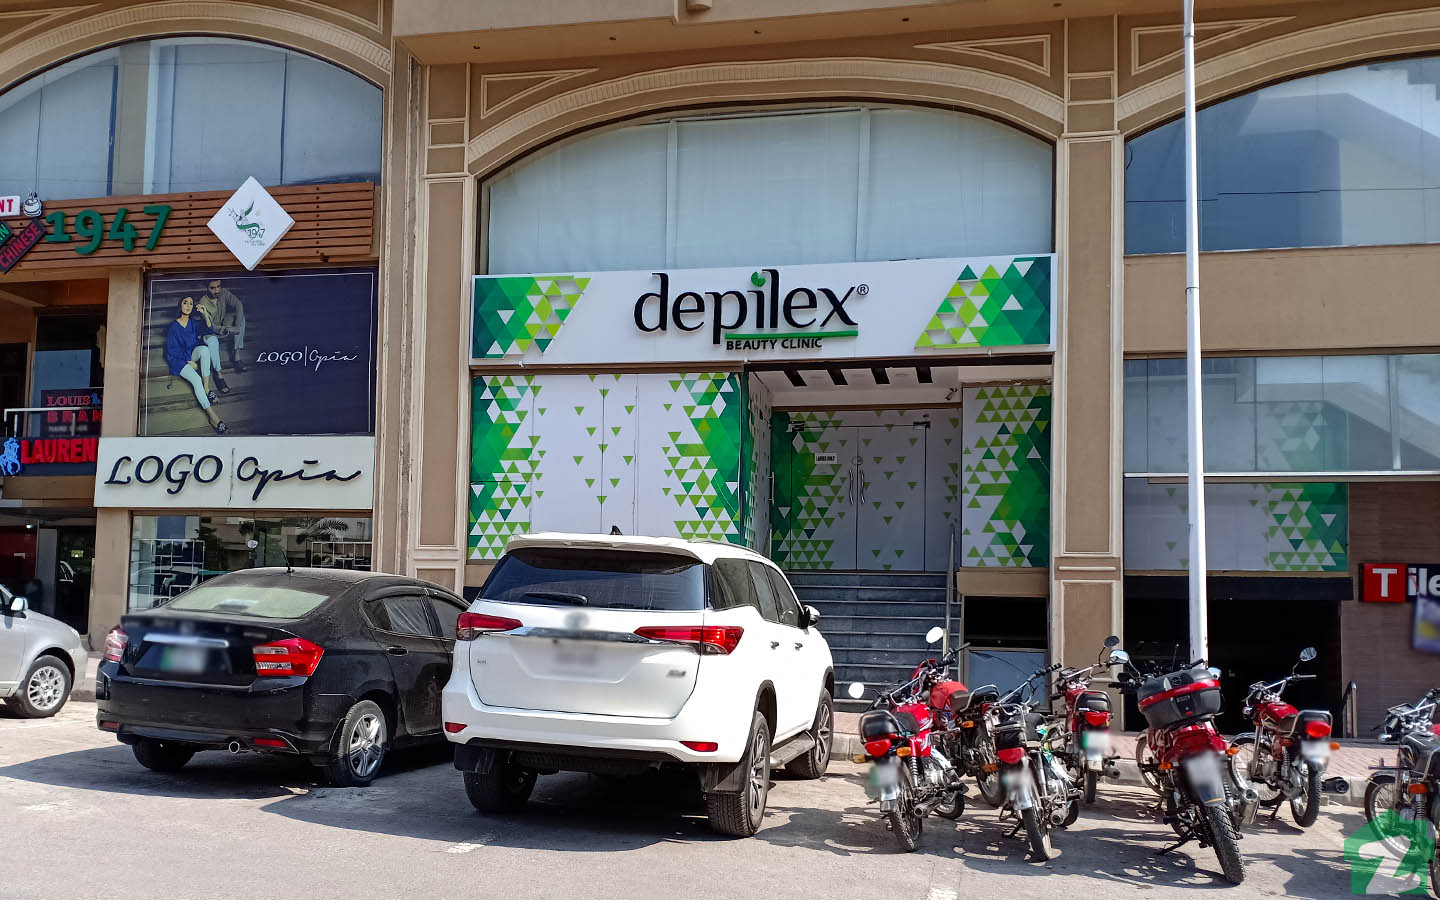 Depilex Beauty Clinic, located in Block A, opposite to Khiva Restaurant